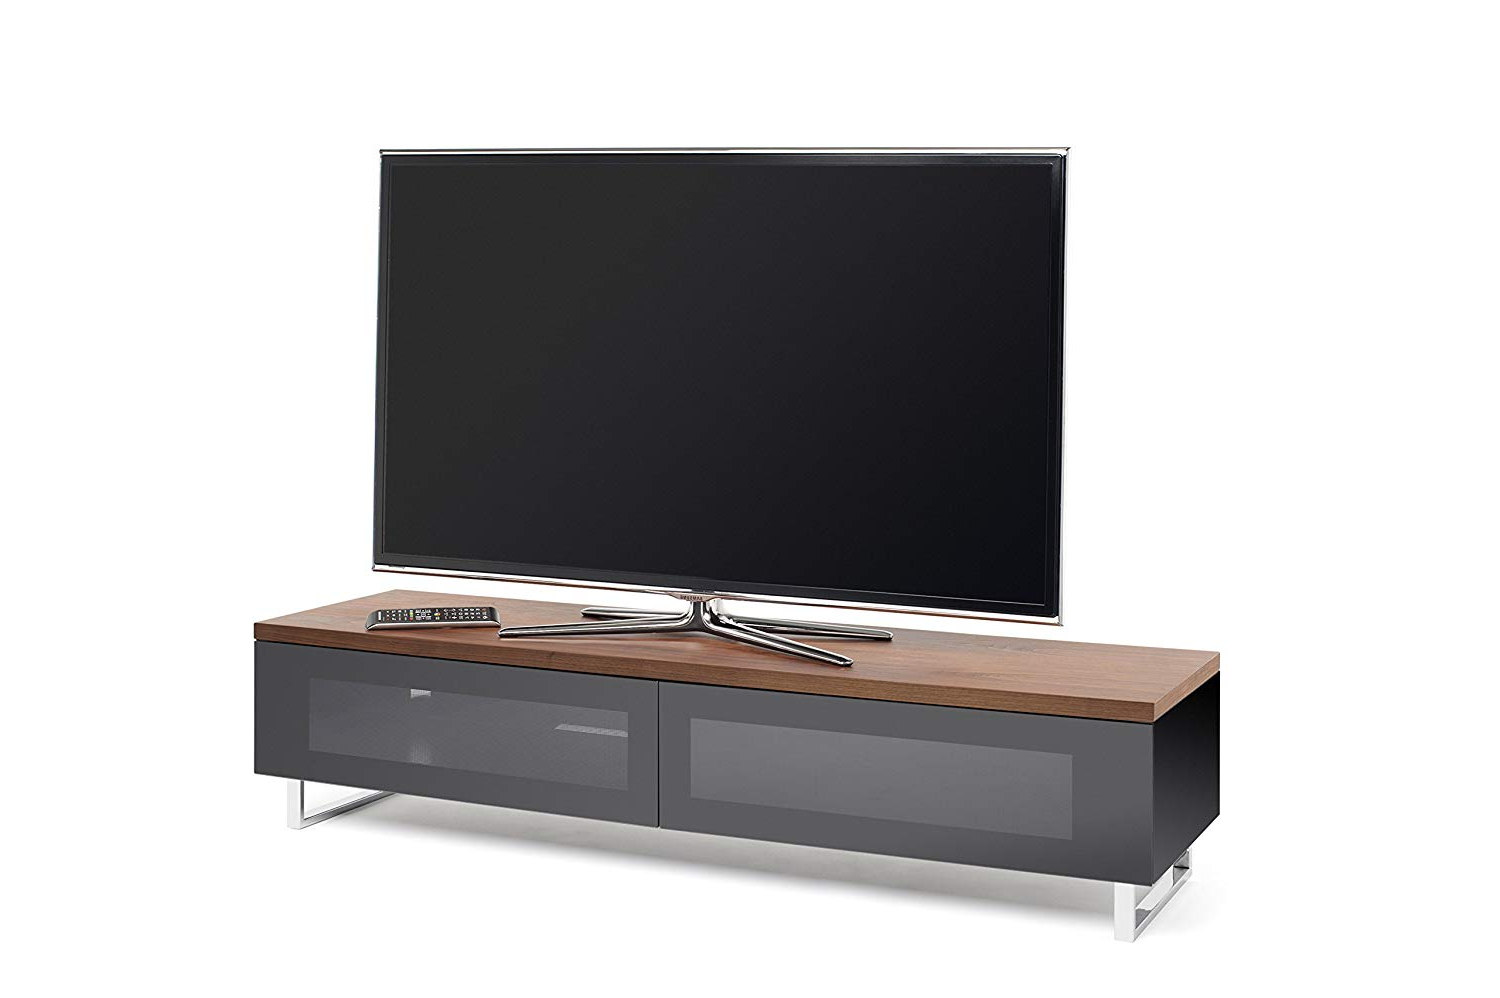 Techlink Panorama 160 Pm160w High Gloss Black Base With Walnut Top Pertaining To Fashionable Techlink Panorama Walnut Tv Stands (View 13 of 20)